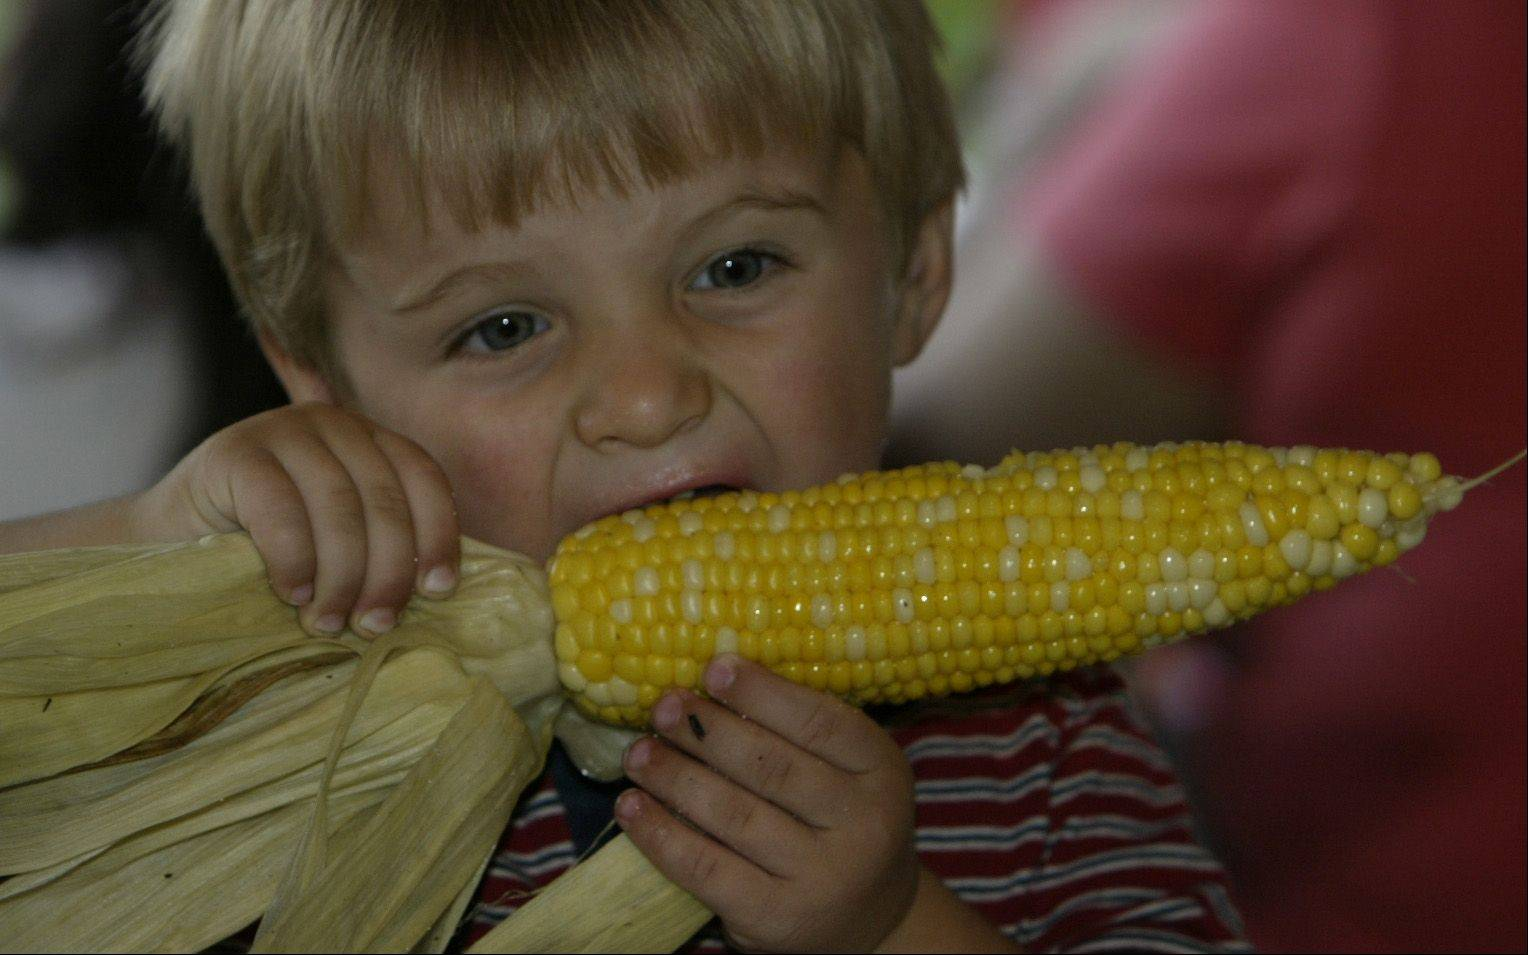 Cody Messick, 2, of Harvard enjoys grilled corn on cob at a previous Greek festival held at St. Sophia's Church in Elgin.